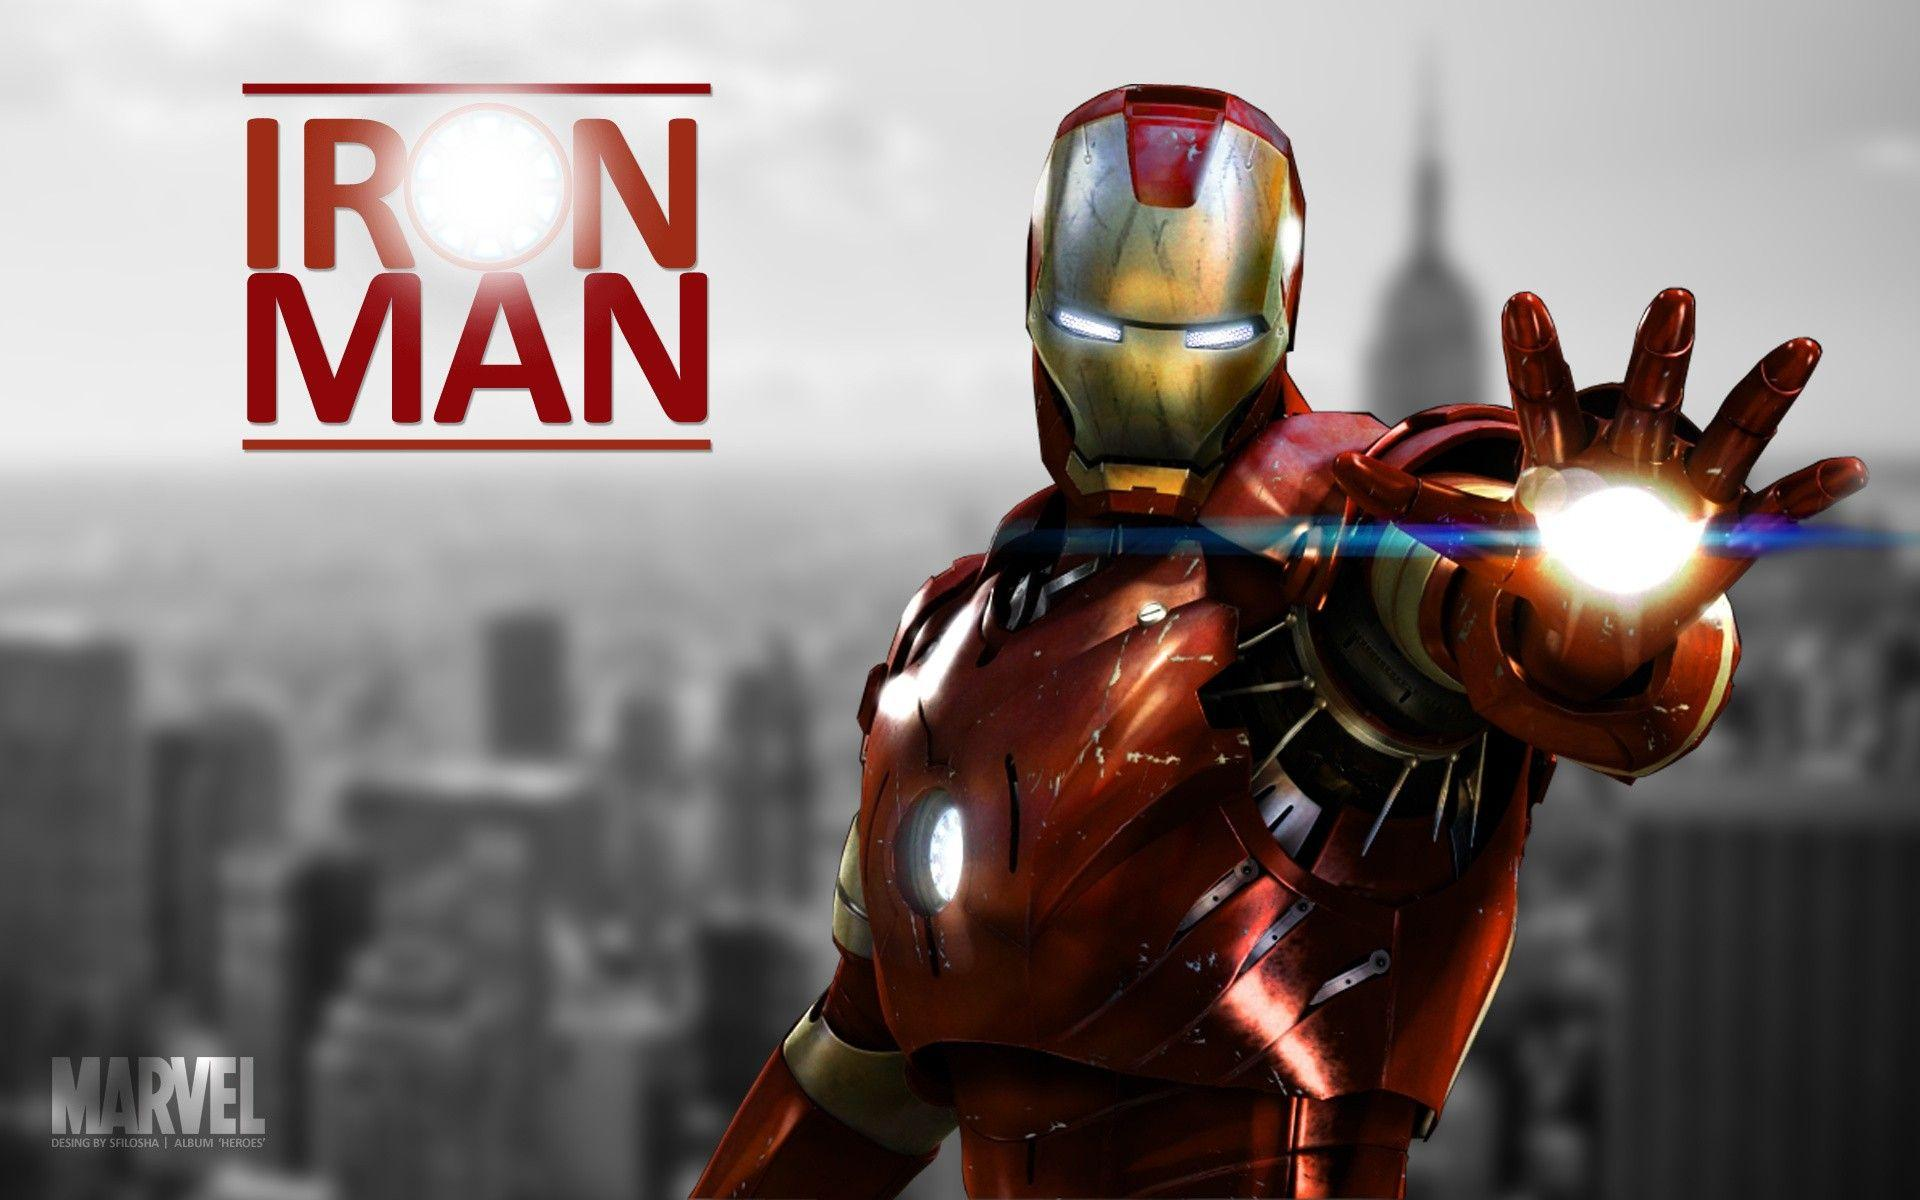 hd wallpapers of iron man - wallpaper cave